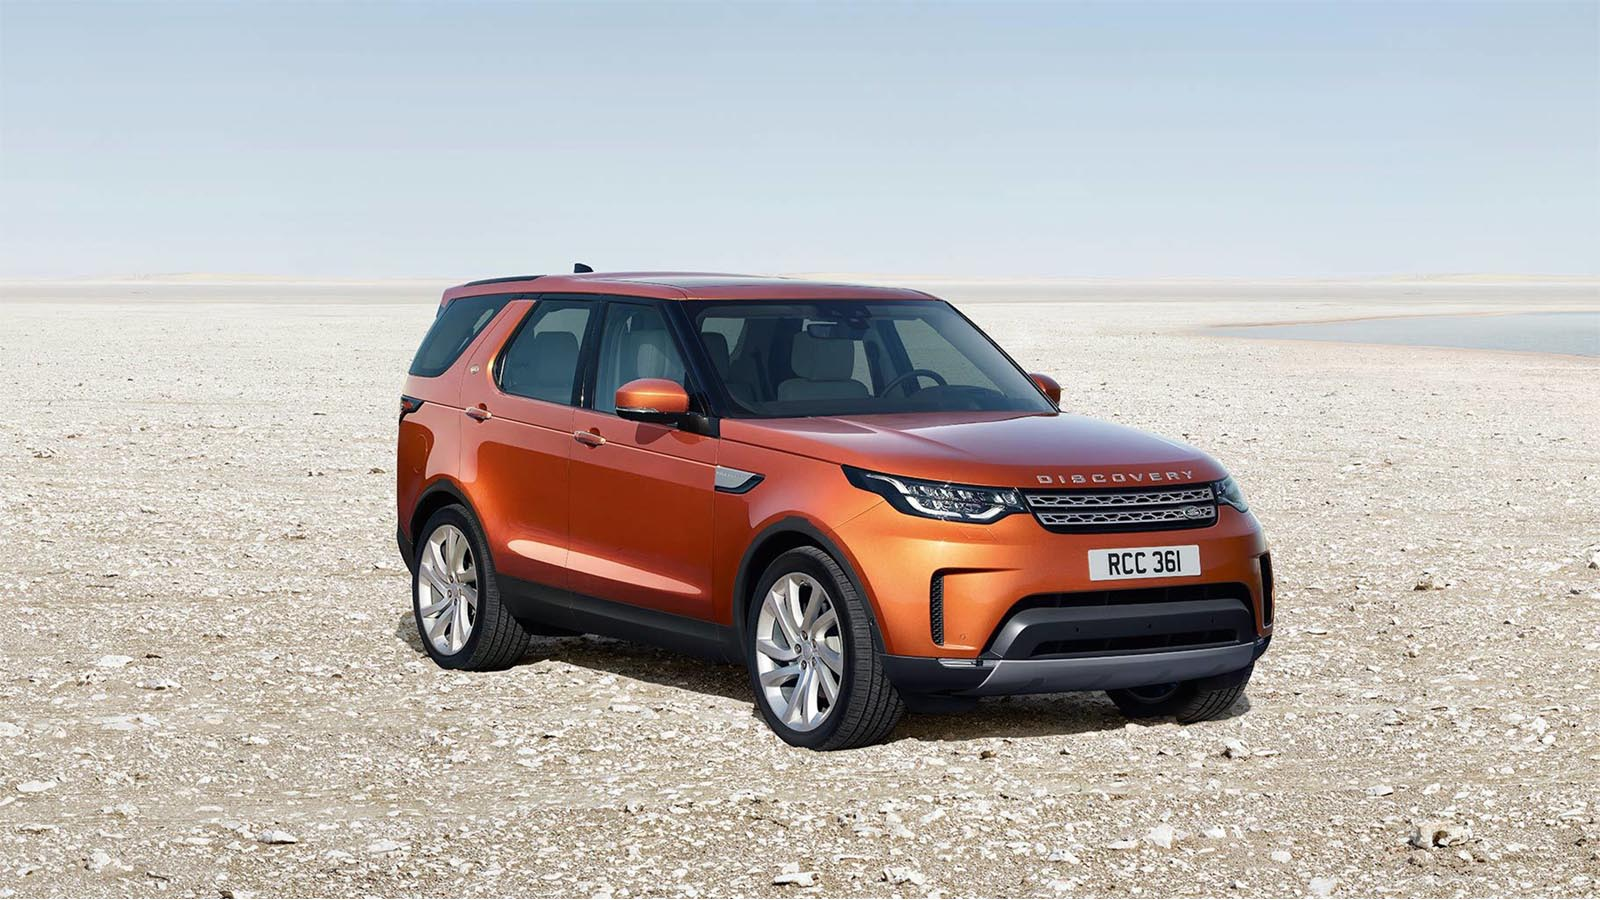 Land Rover Discovery 2017 4x4 Off-Road front 3/4 view